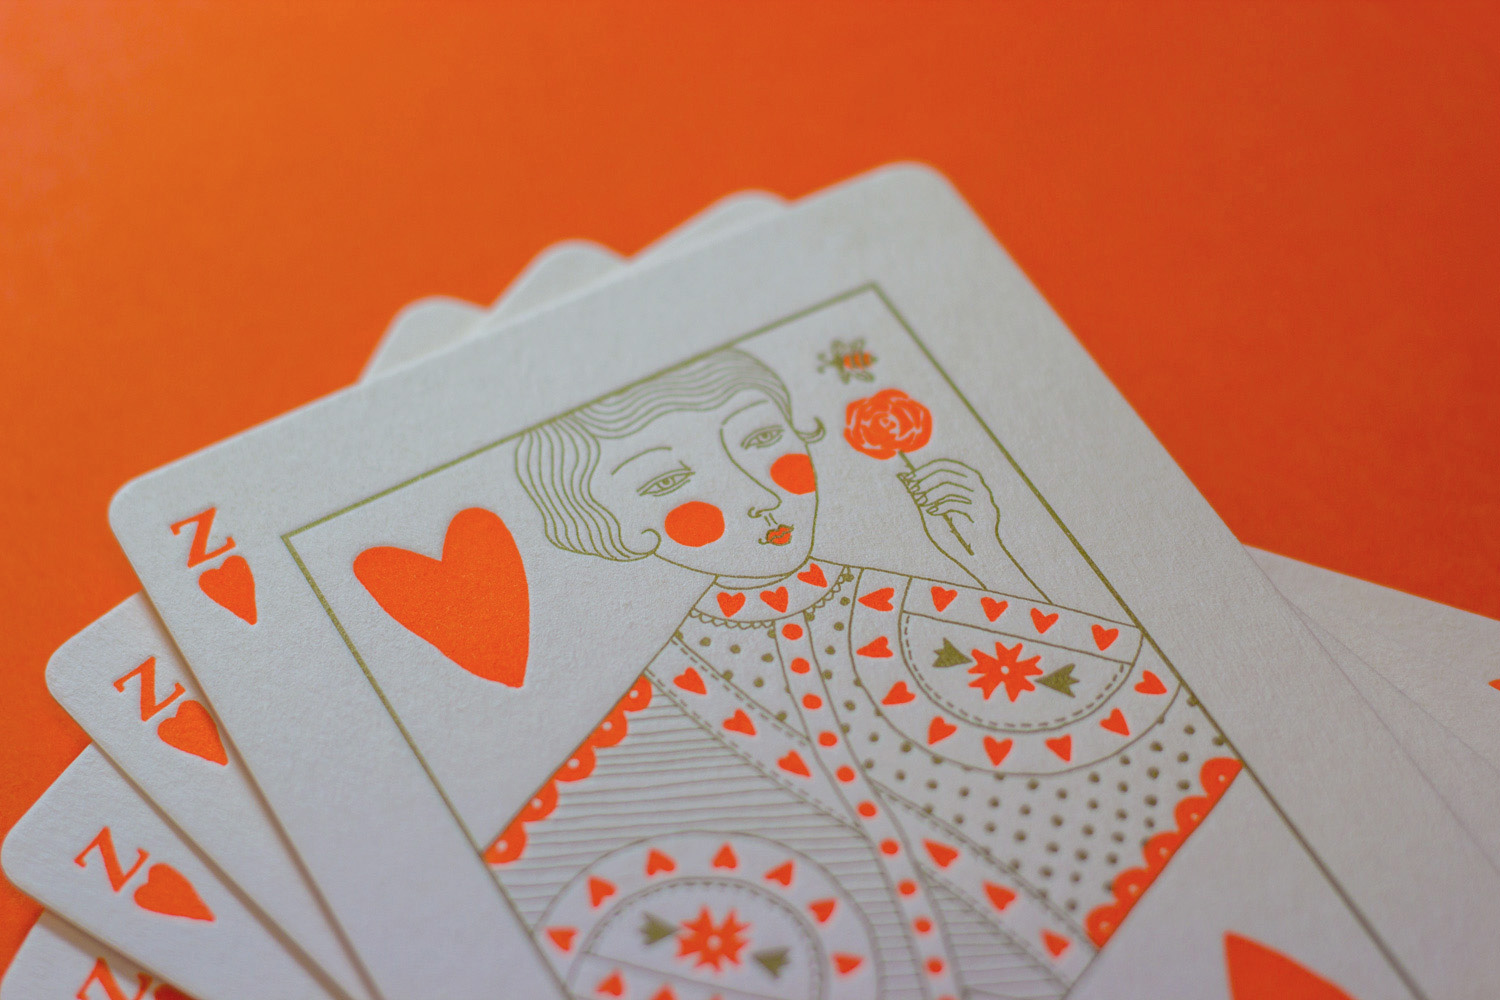 Unique letterpress wedding invitations for Hamish Blake and Zoe Foster-Blake illustrated by Allison Colpoys 3